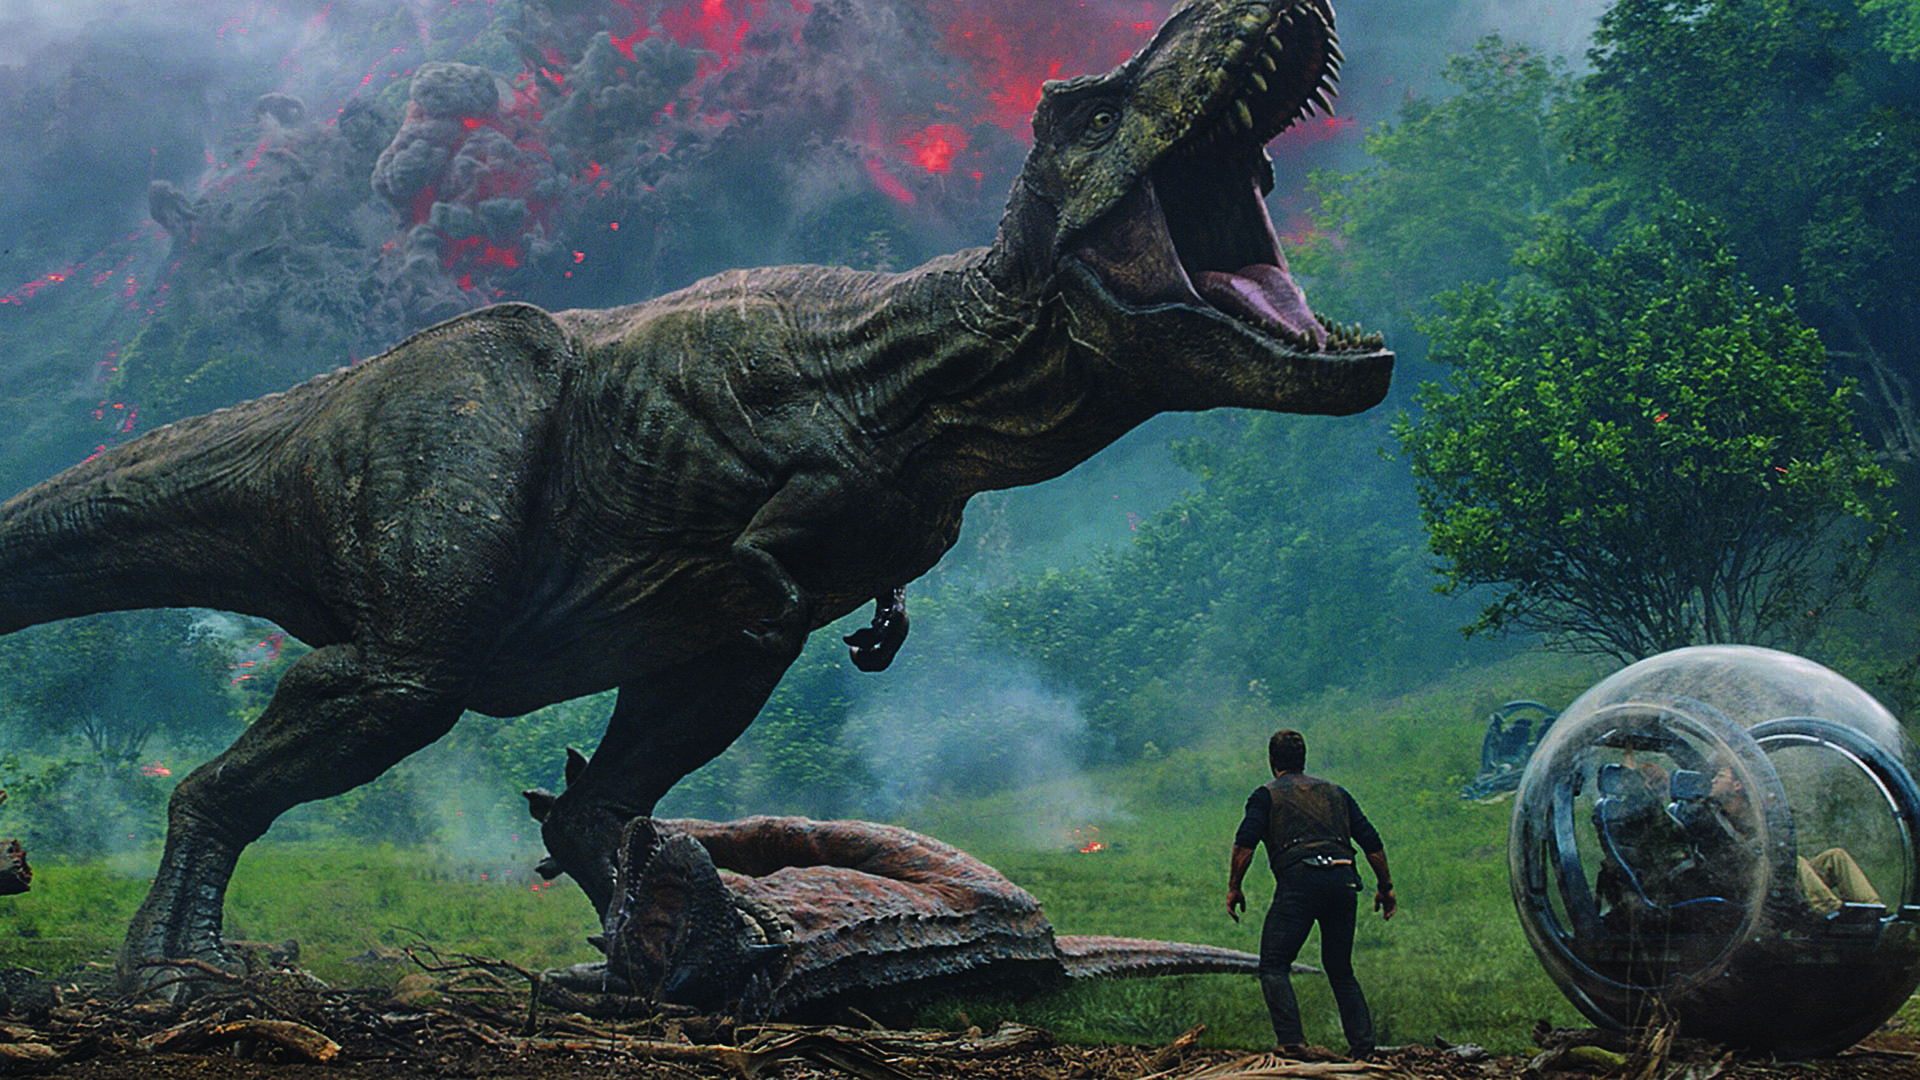 Movie Watch: Amarillo film options for June 21 to 28, with 'Jurassic Park,' special screenings, more